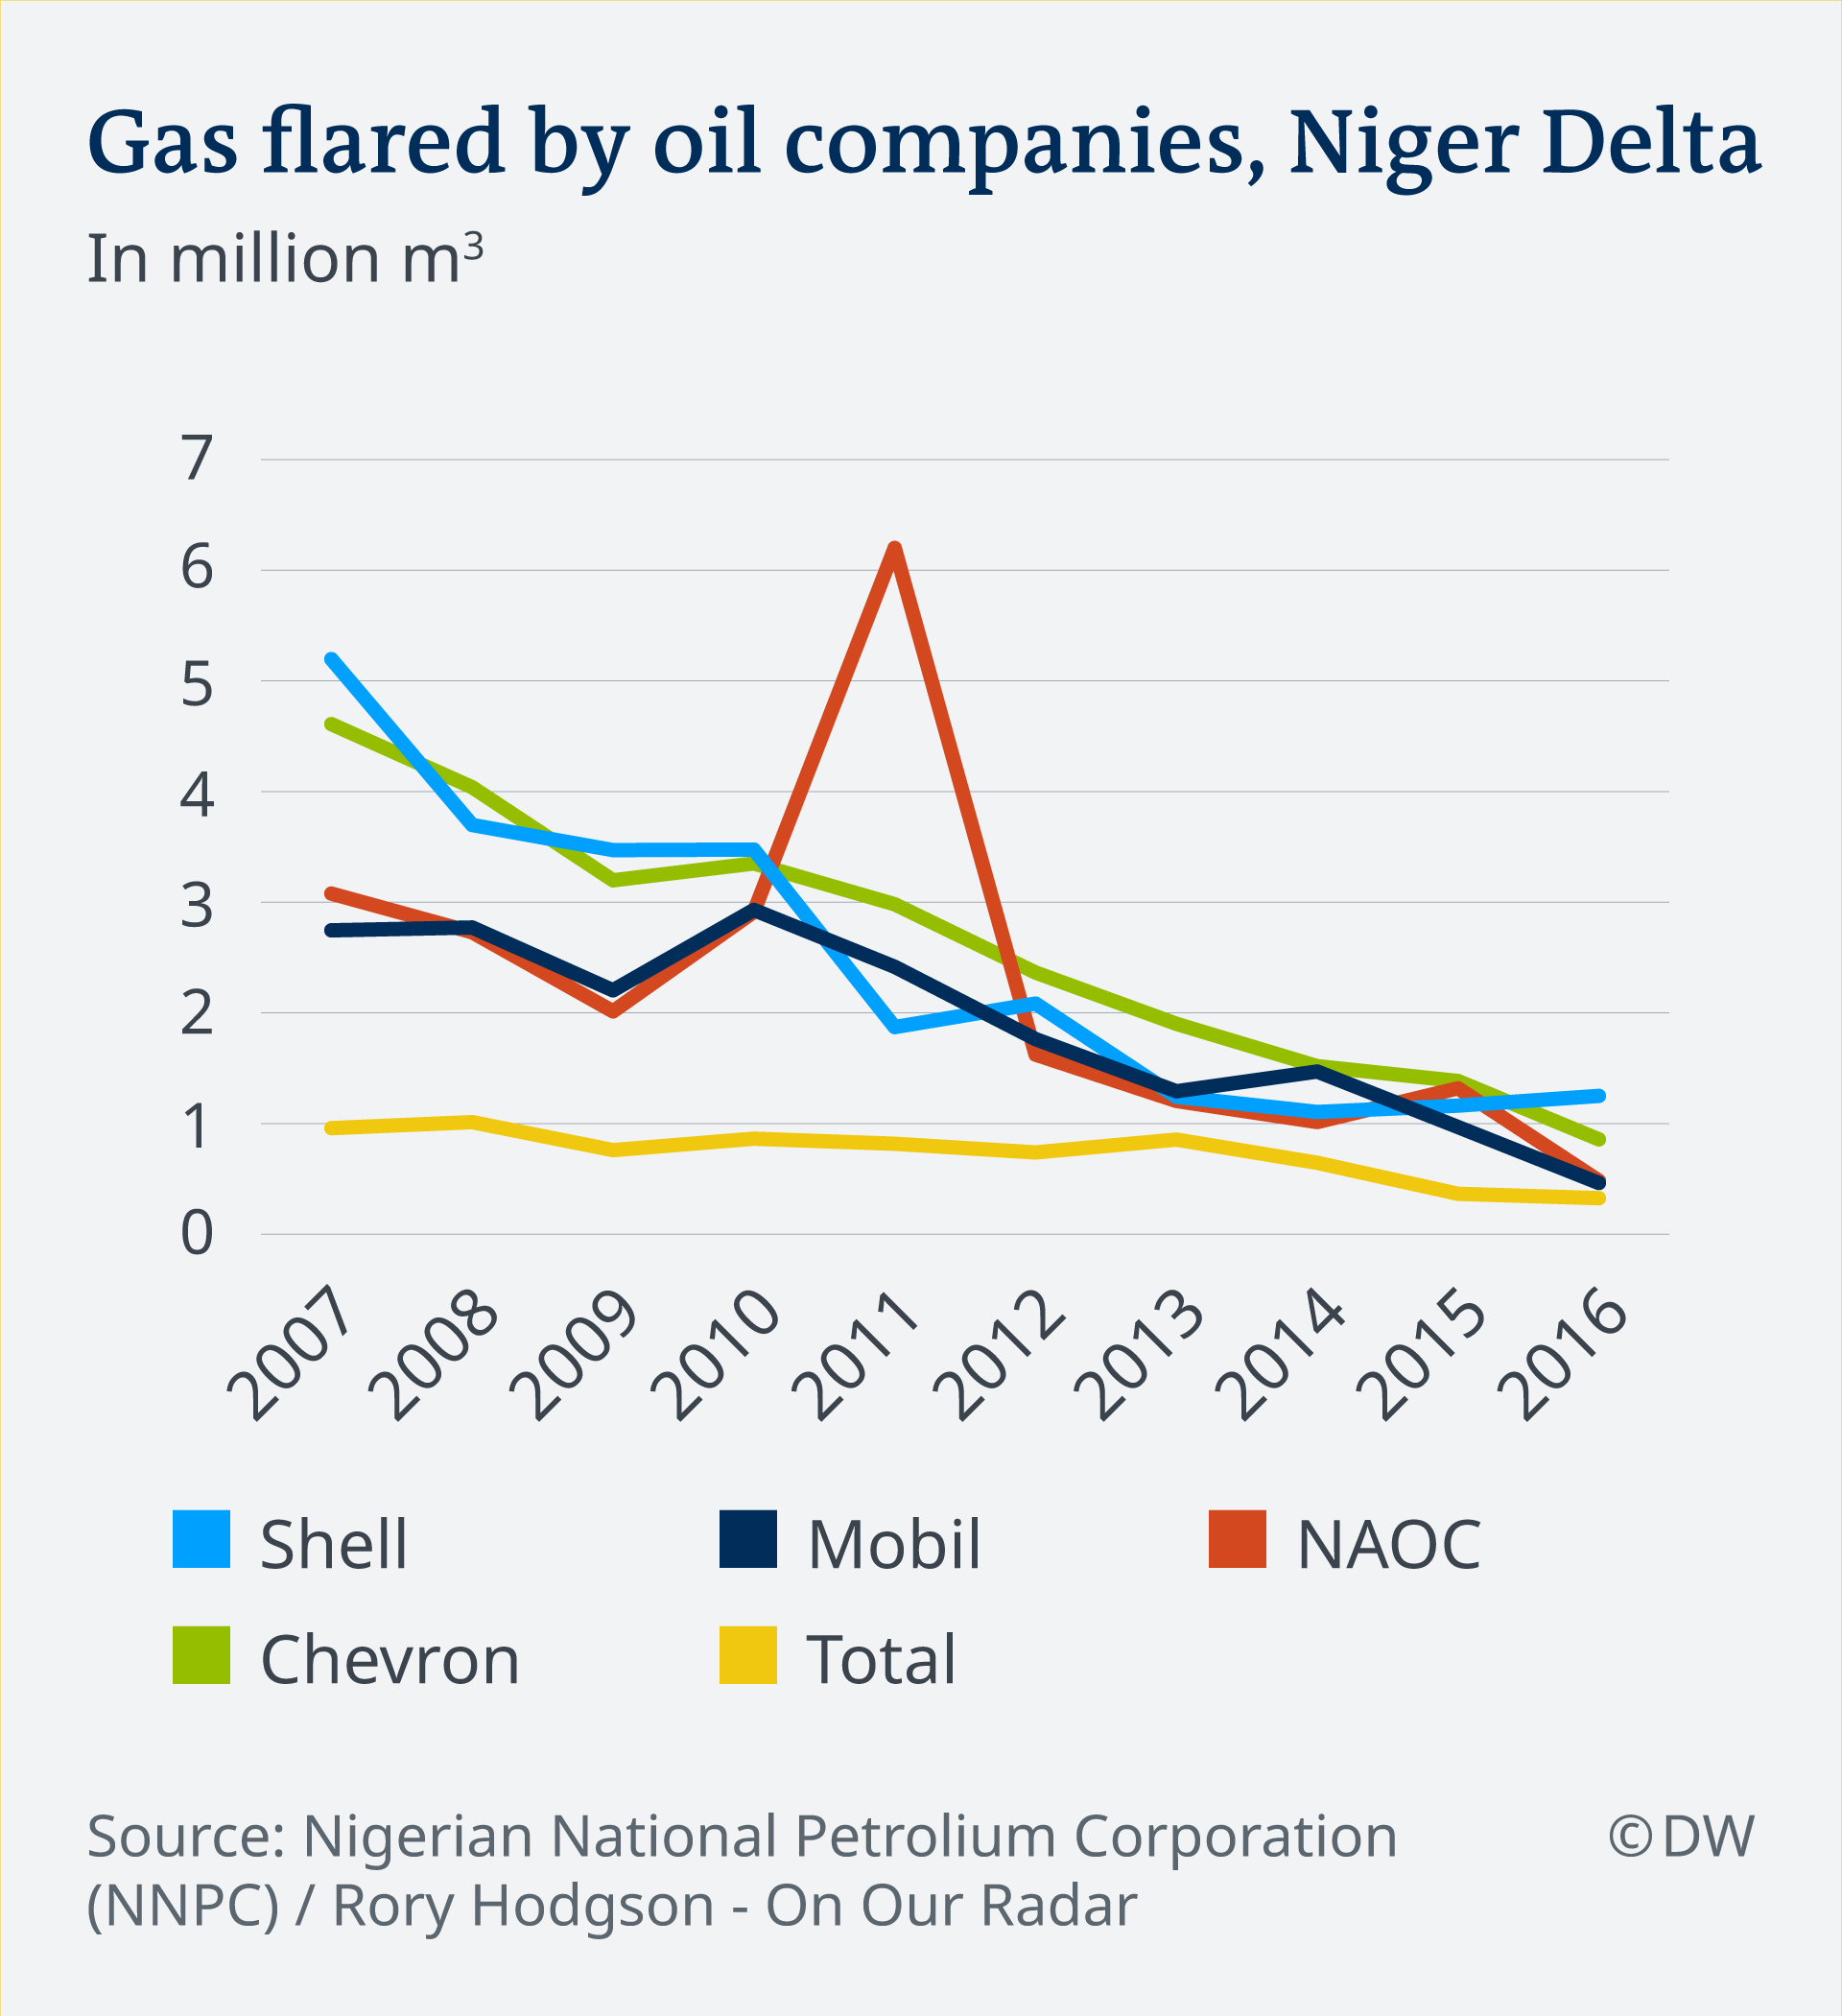 Gas flared by oil companies in the Niger Delta